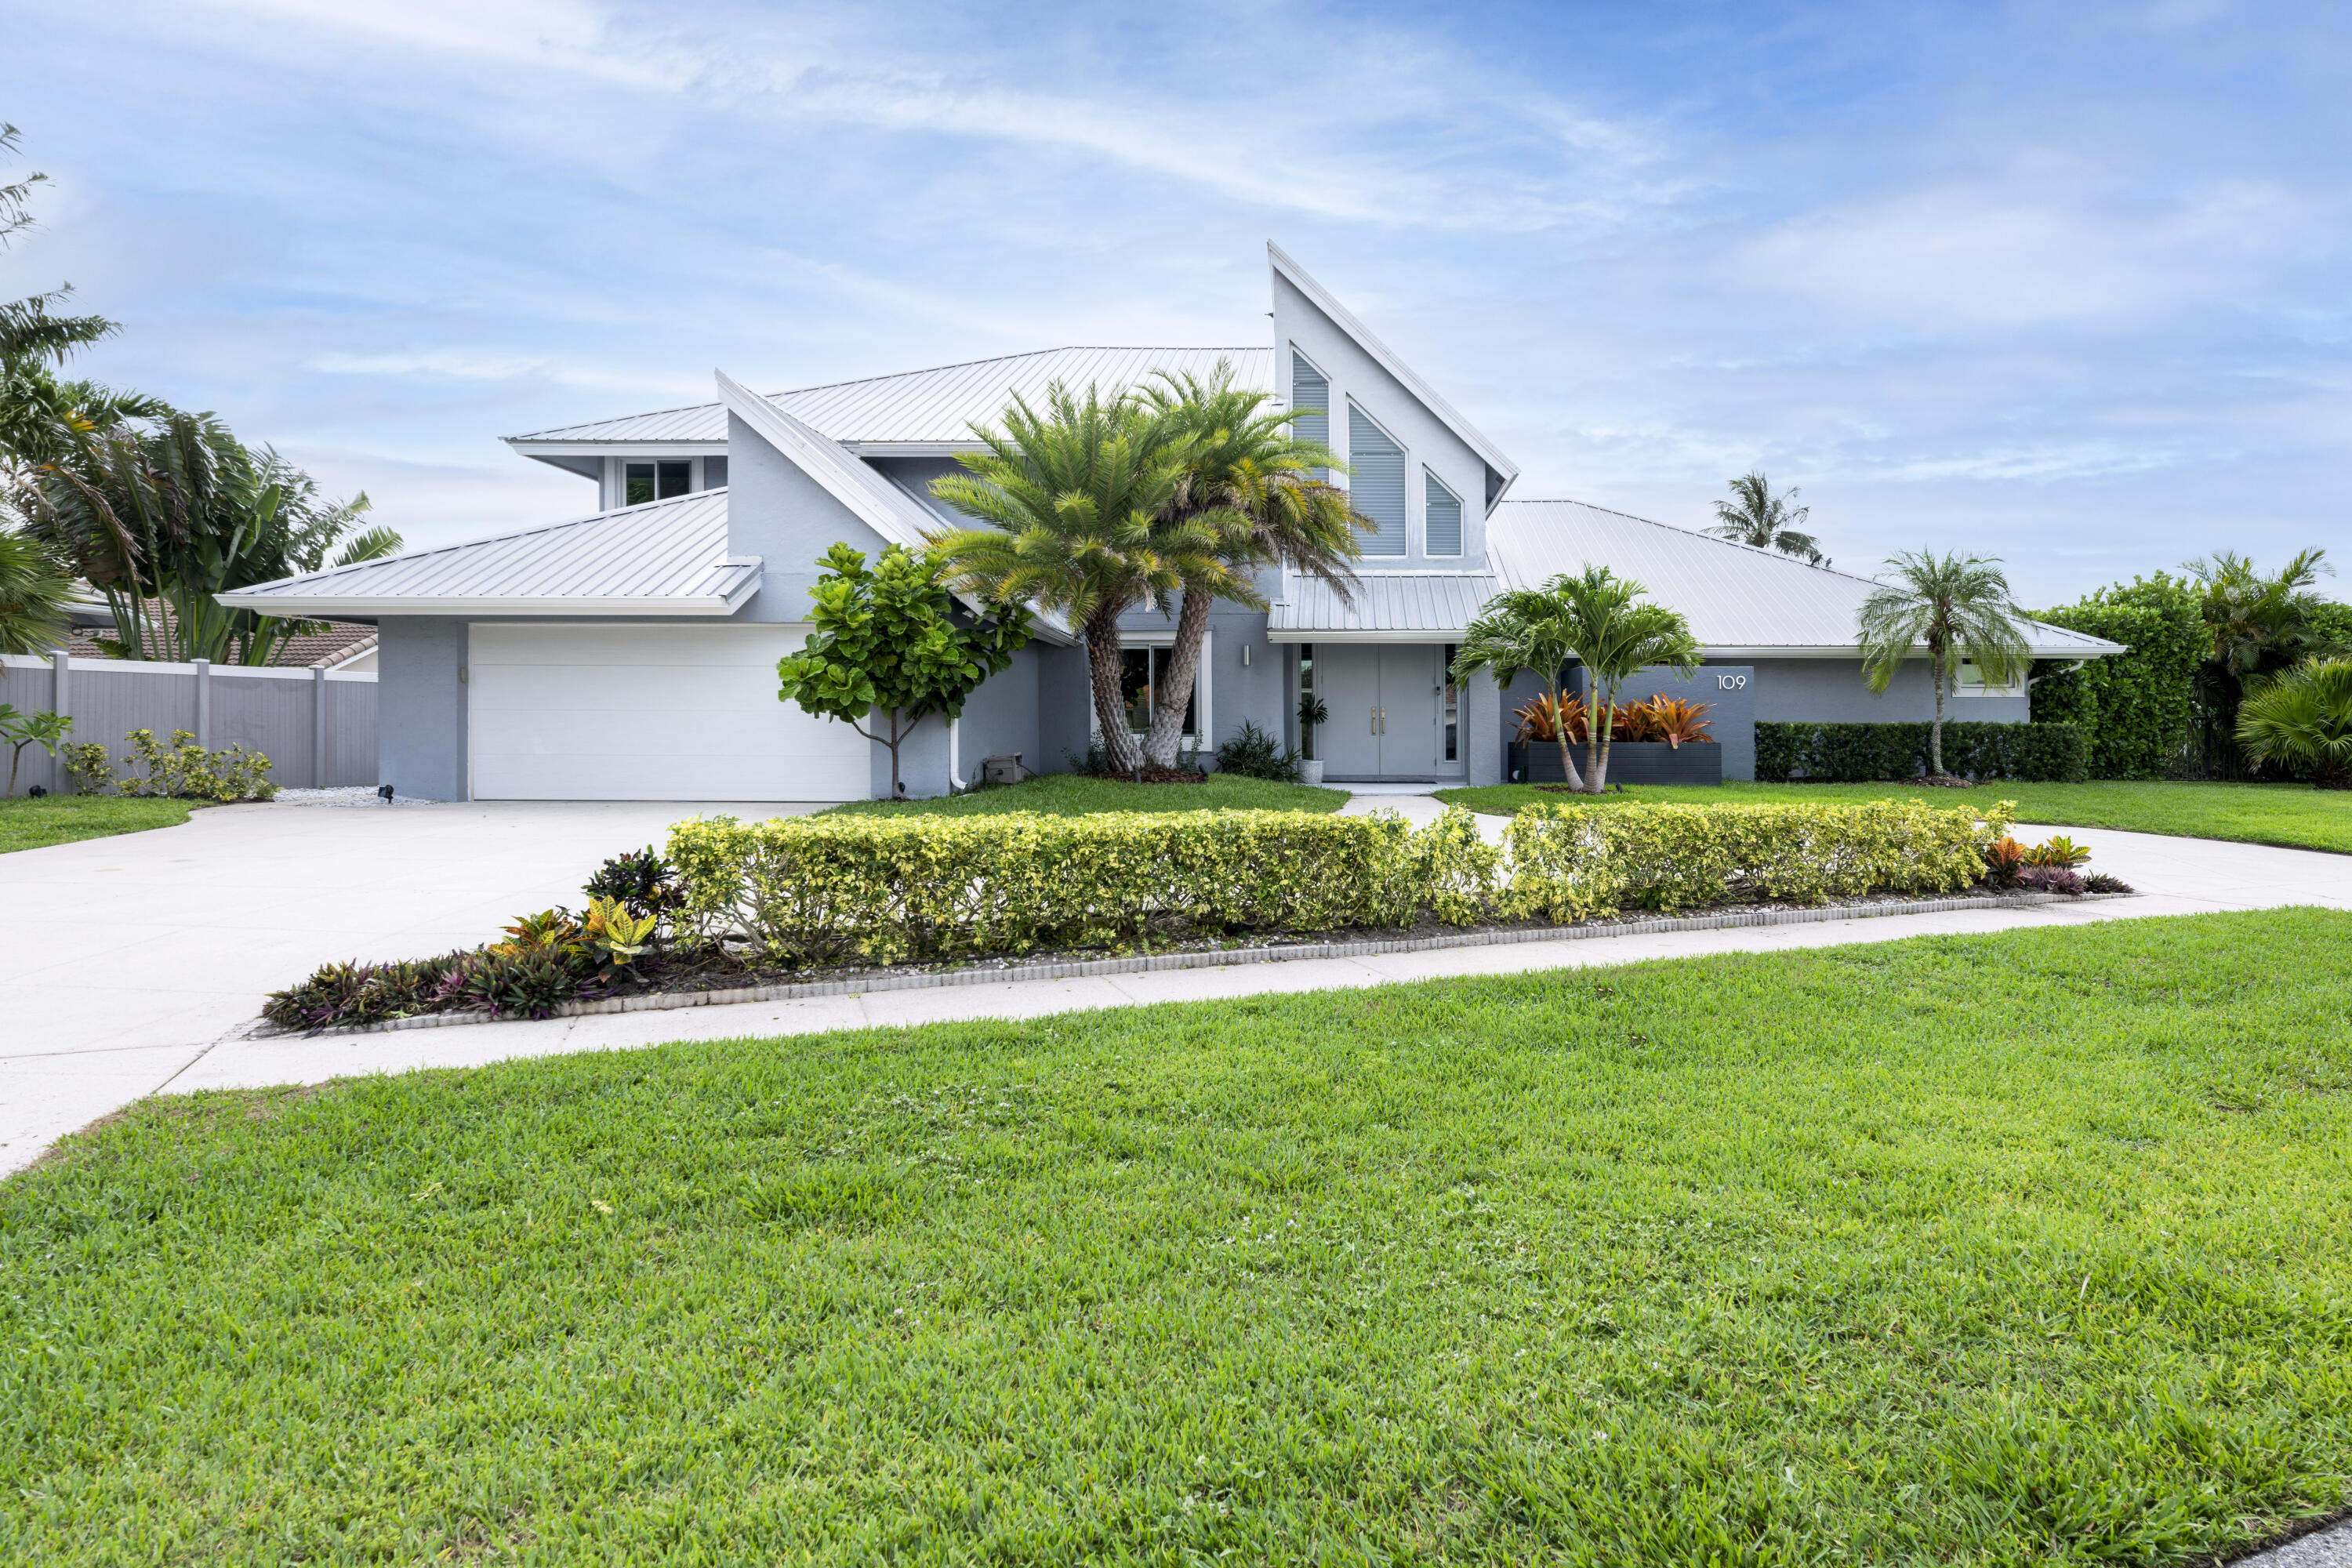 Stunning high-end contemporary design in OLYMPUS w/deeded beach access! Perfect for open space entertaining, living & relaxing in private setting close to Beach, Intracoastal and commerce! Completely remodeled 6BR/4BA bright home w/soaring ceilings. Chef's kitchen w/Wolf 6-burner gas range, SubZero 48'' PRO w/glass door, 2 dishwashers. Huge pantry/baking zone w/sink, clear ice maker. MBR w/Spa-like BA, huge closet. Guest Suite (sleeps 6) w/pool access . Huge Laundry Room w/Thermador fridge. 2nd Floor w/HUGE loft/office area, plus 2 BRs! Private landscaped yard offers large pool, luxurious Hot Tub for 10 & outdoor kitchen with grill, sink and fridge. Covered & open patios. Impact Glass and doors, Aluminum Roof 2011, CBS construction. There's so much more - PLEASE READ Detailed Features List